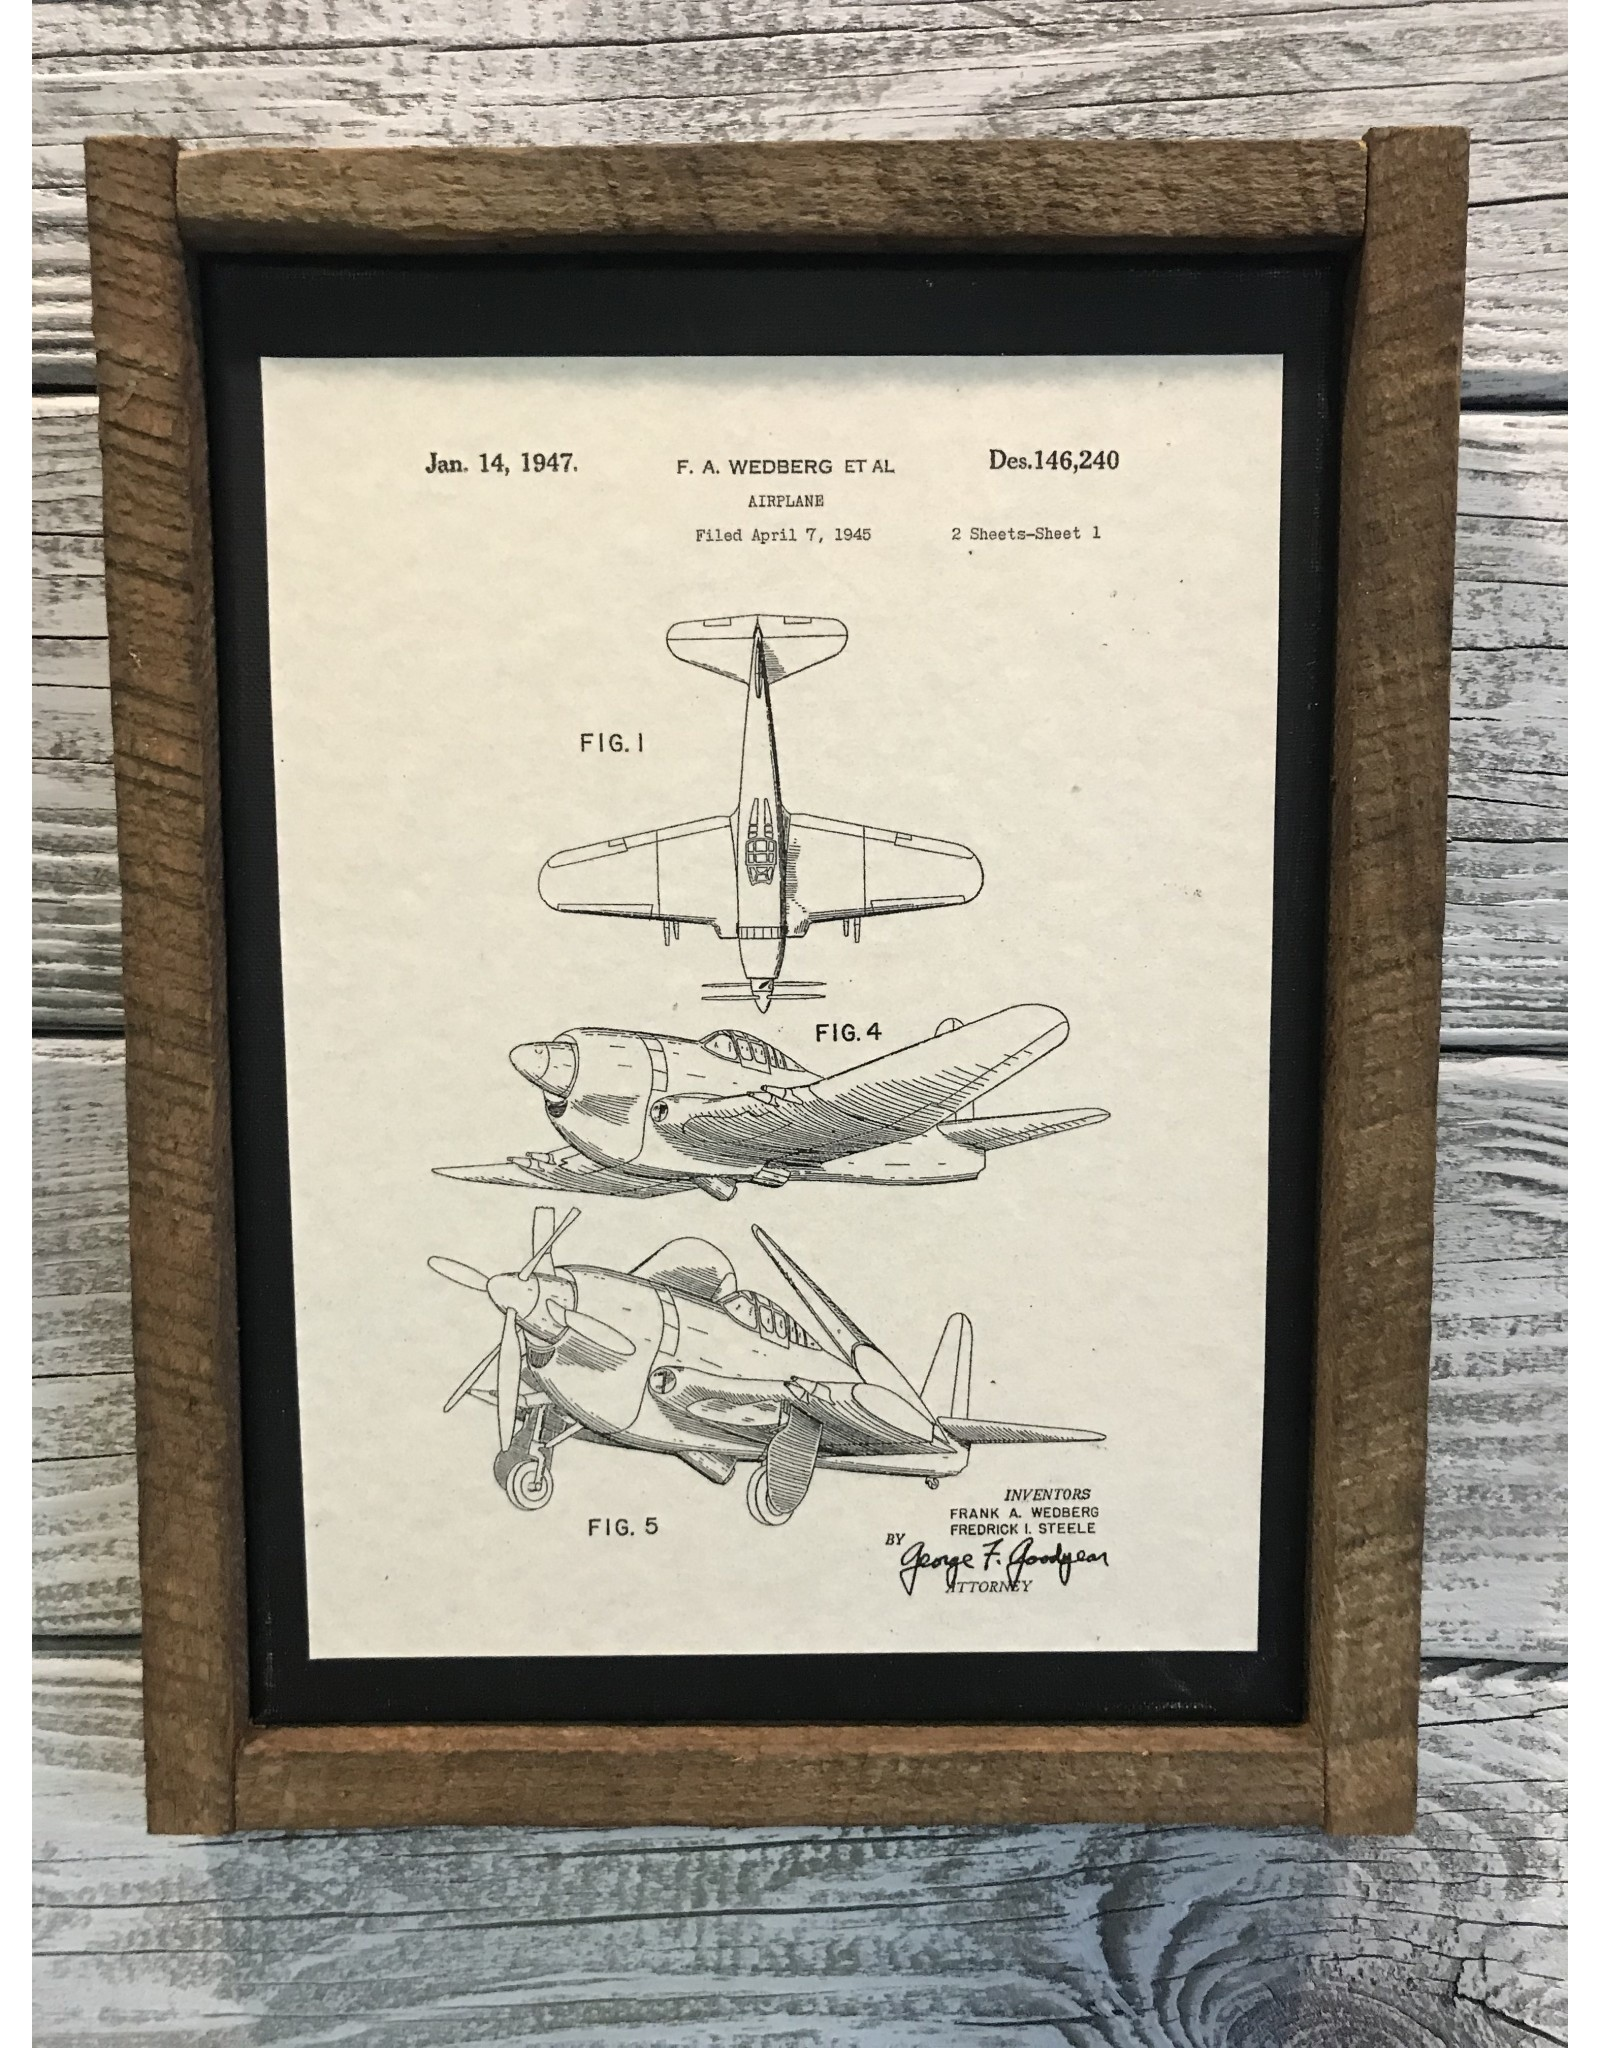 Airplane - Wedberg - Patent Color & Frame: Parchment/Tobacco Stick